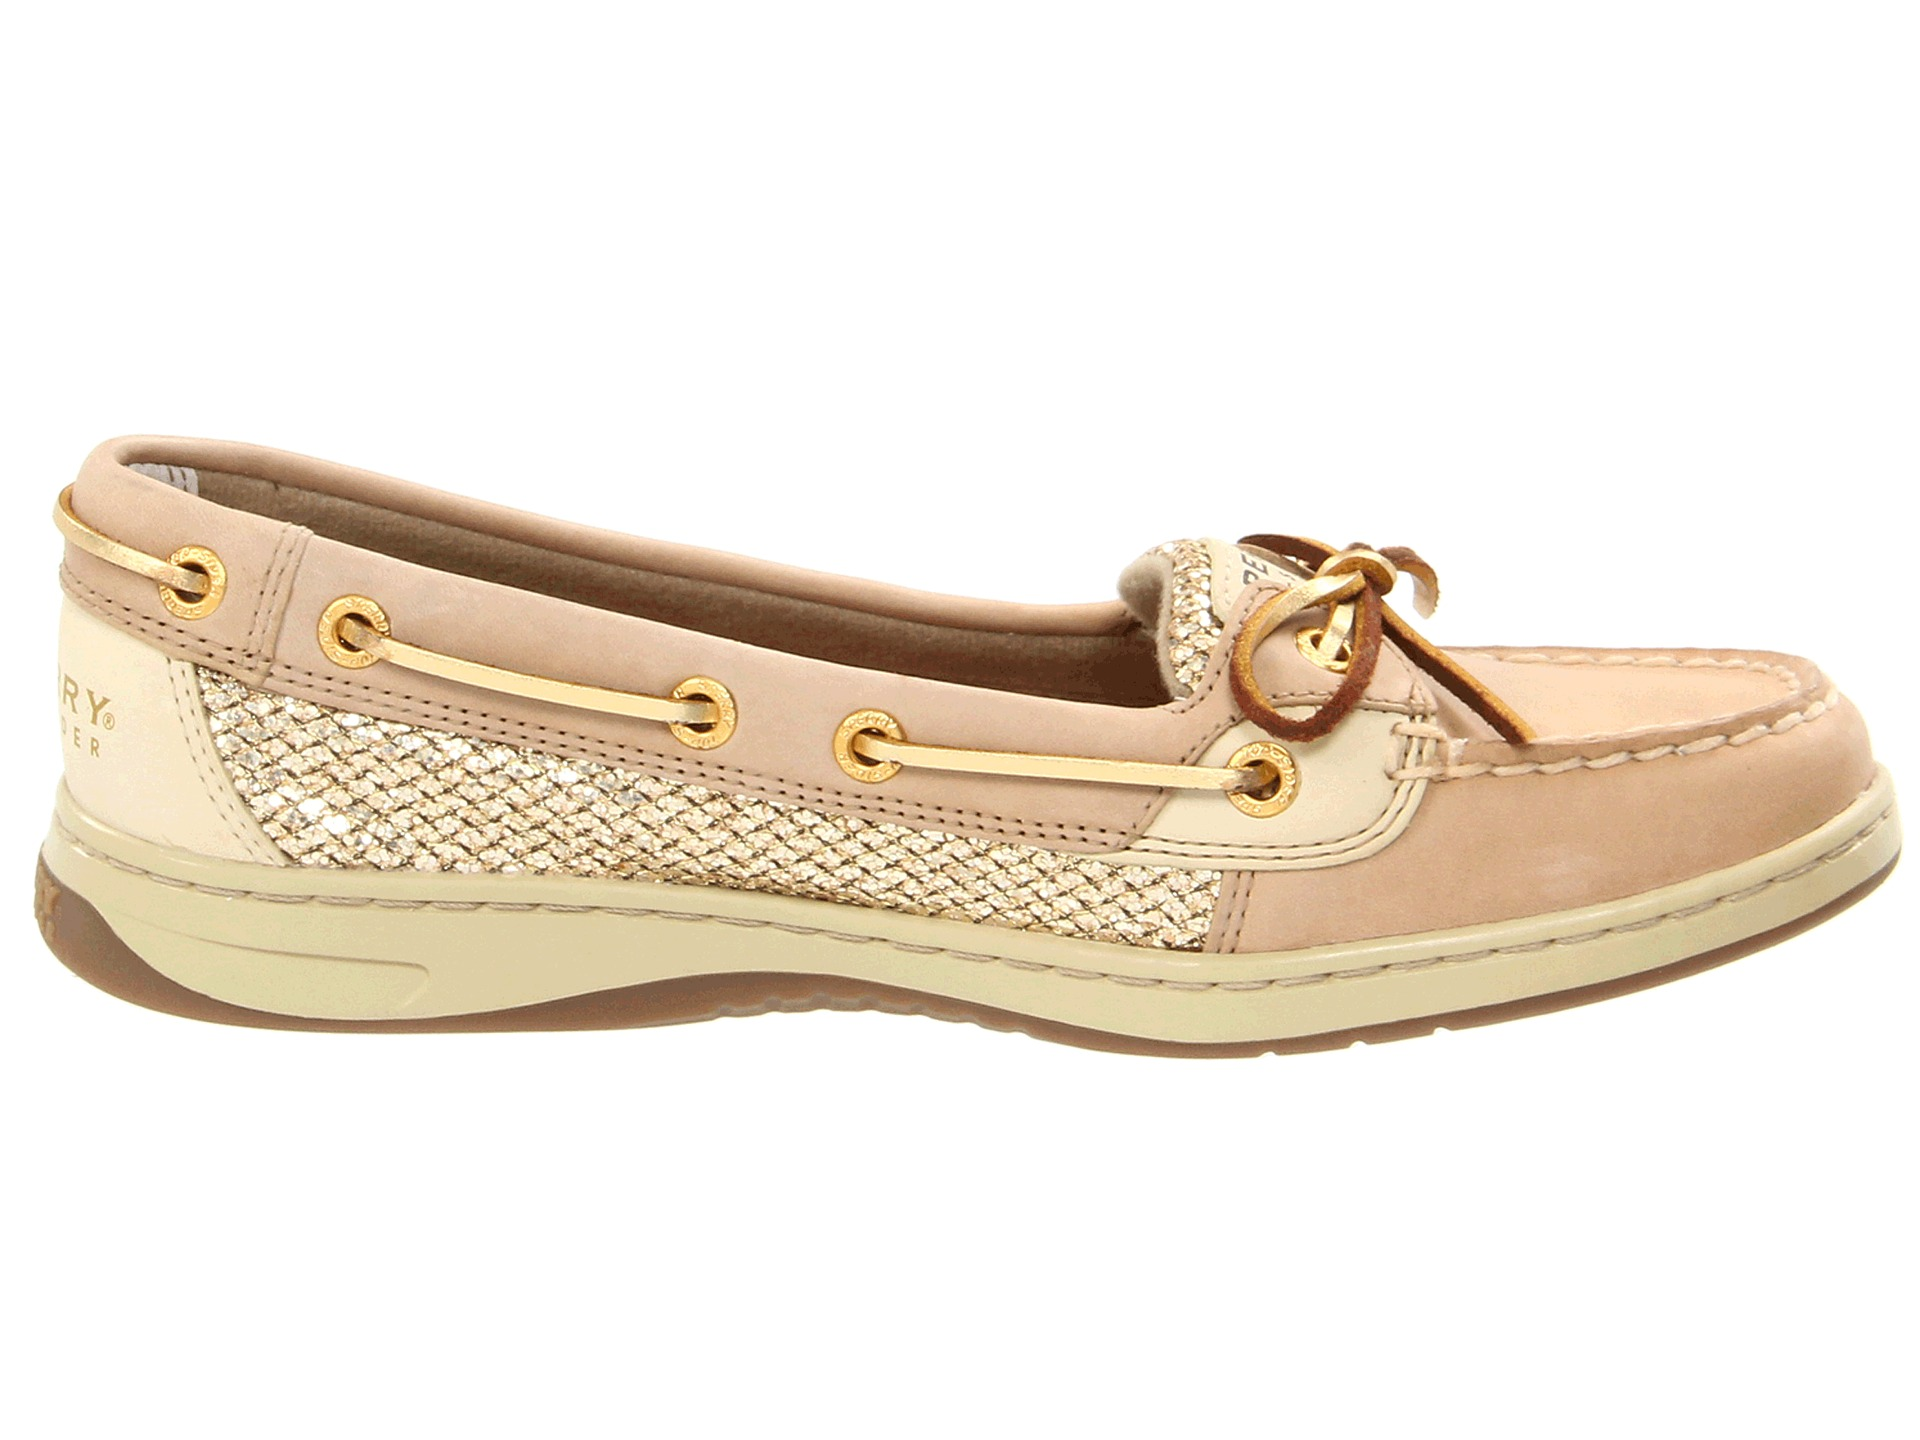 Sperry top sider angelfish linen gold glitter | Shipped ...